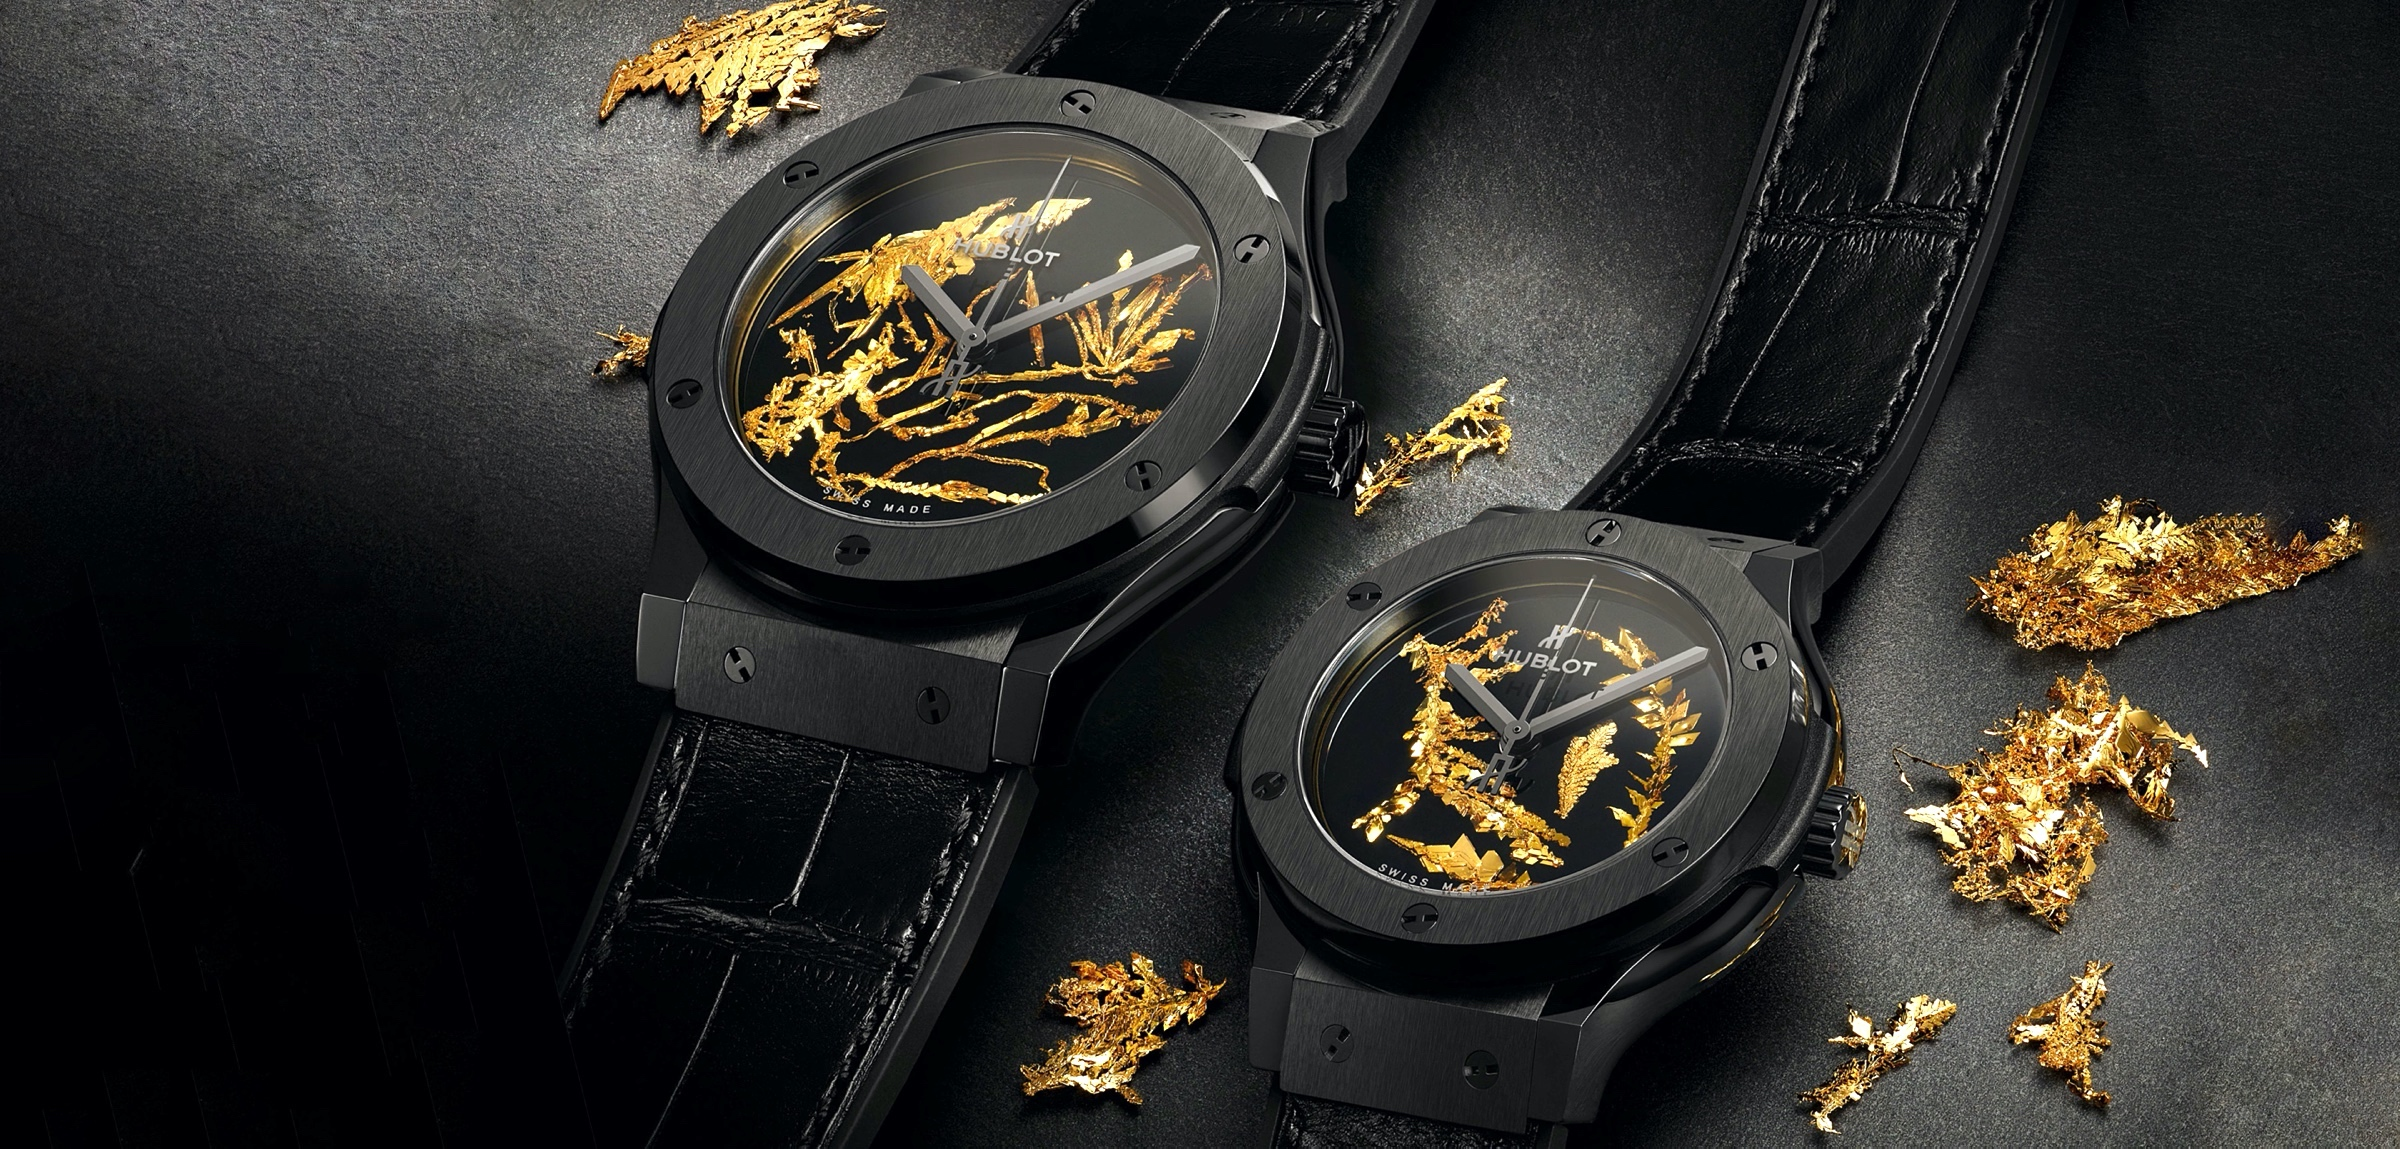 Hublot Classic Fusion Gold Crystal - cover